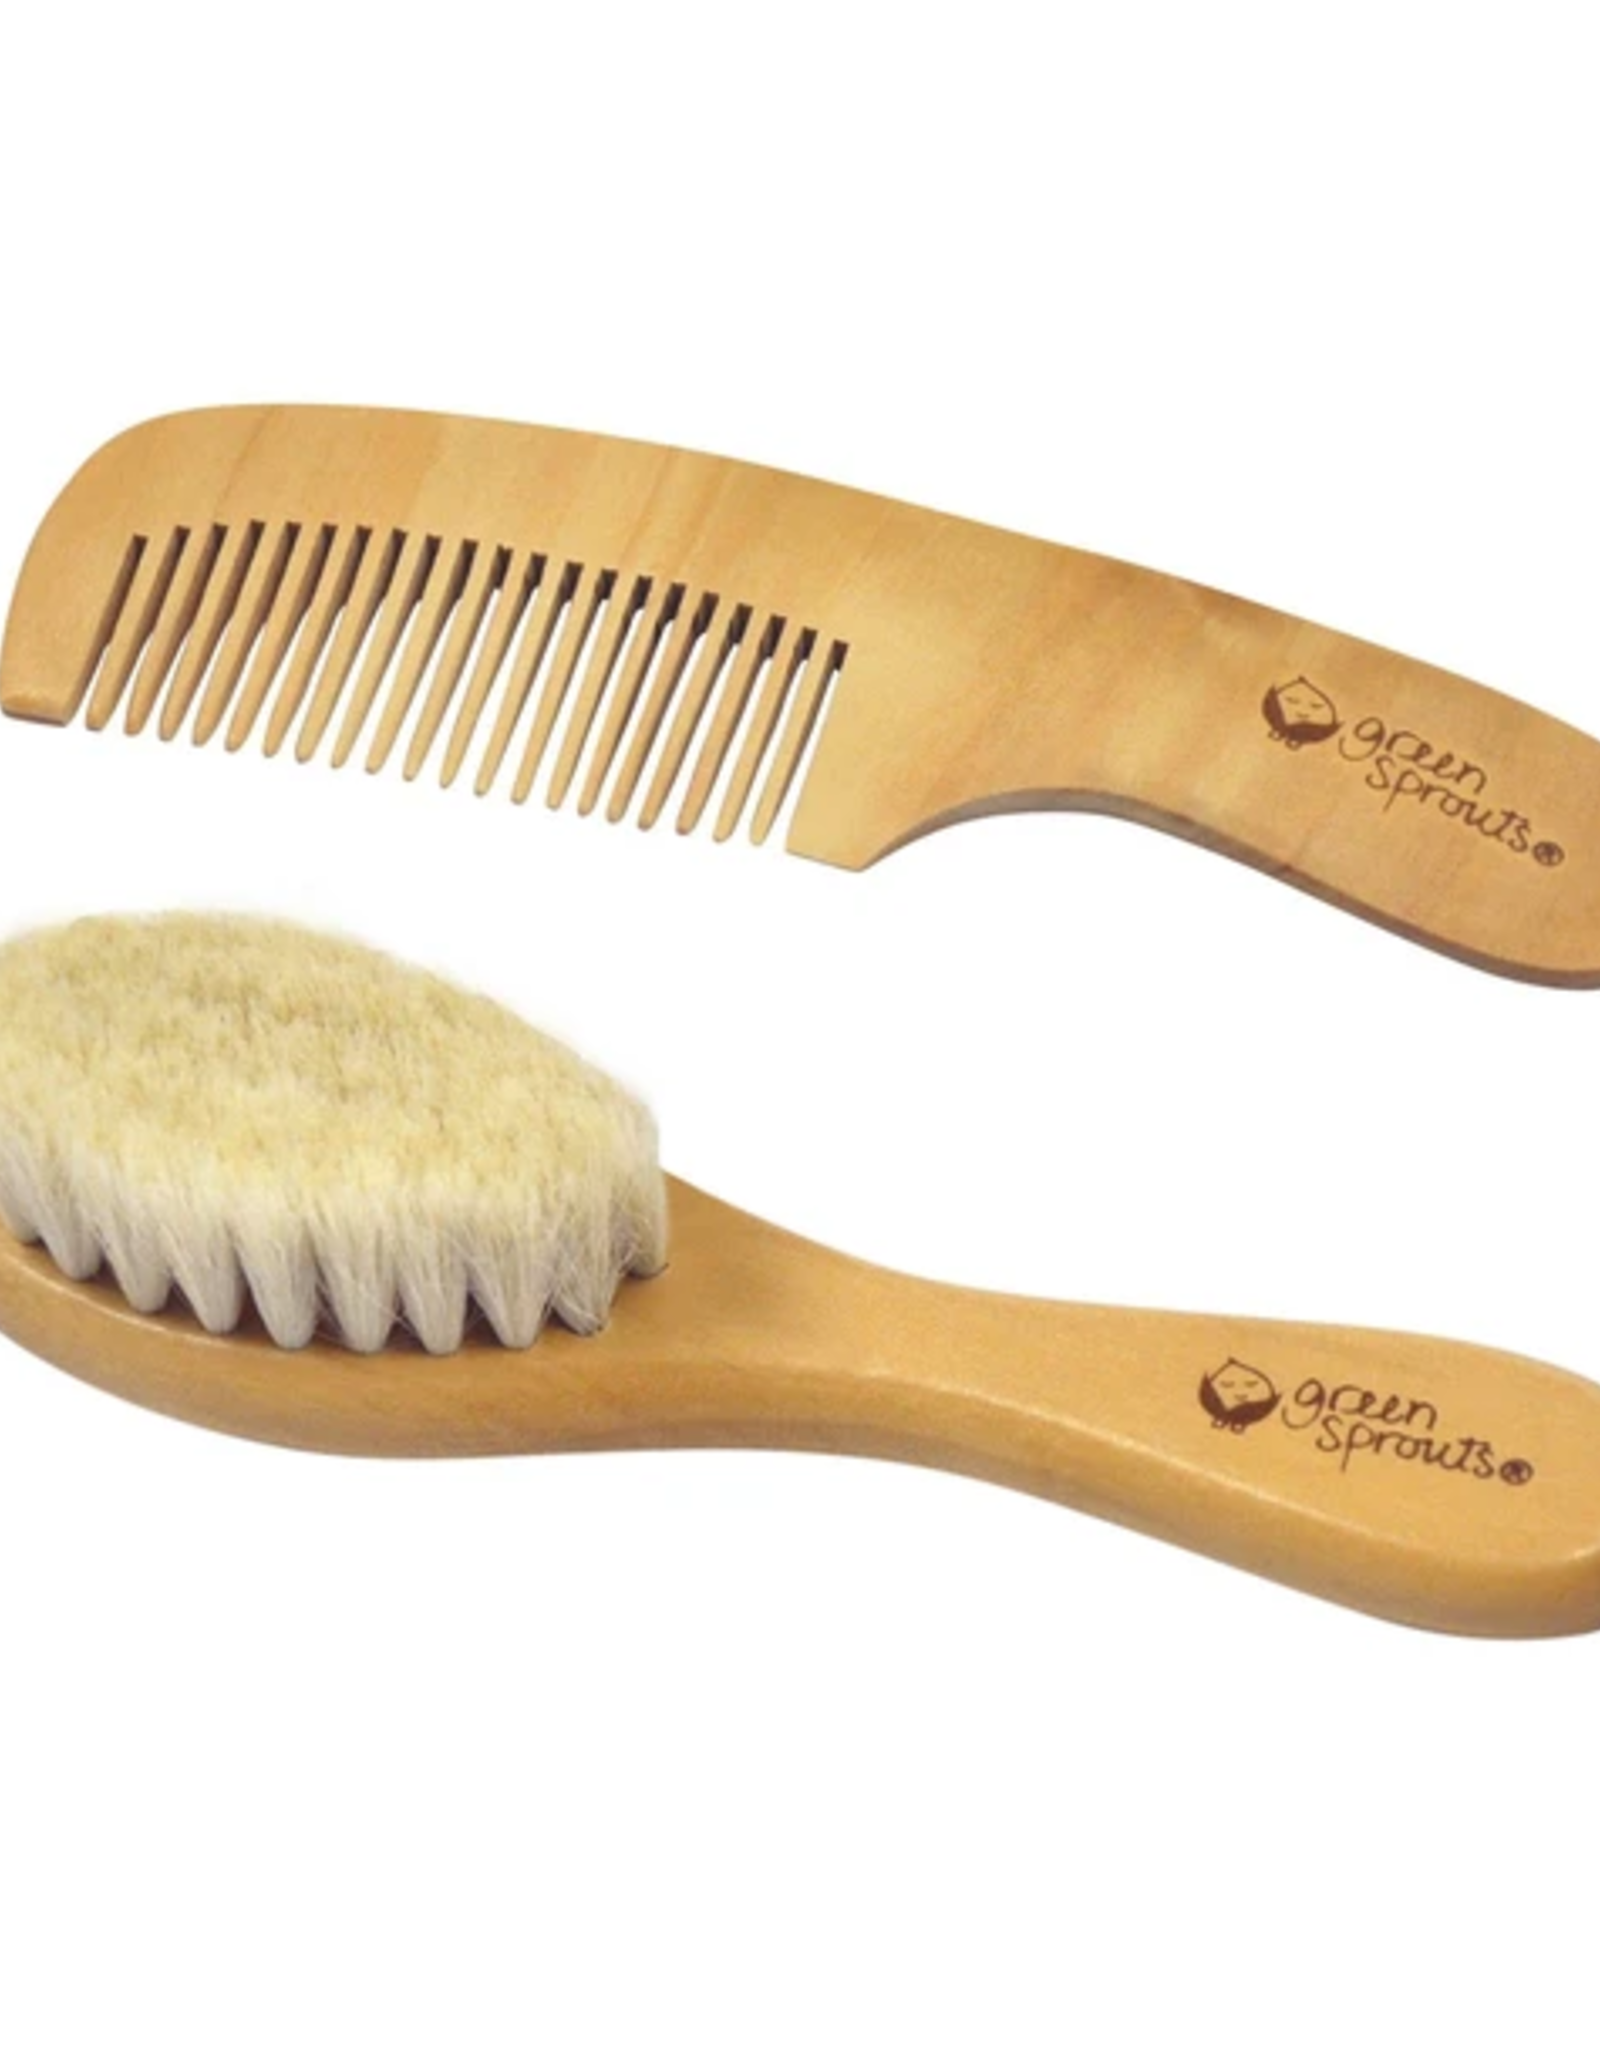 Greensprouts Greensprouts - Baby Brush & Comb Set